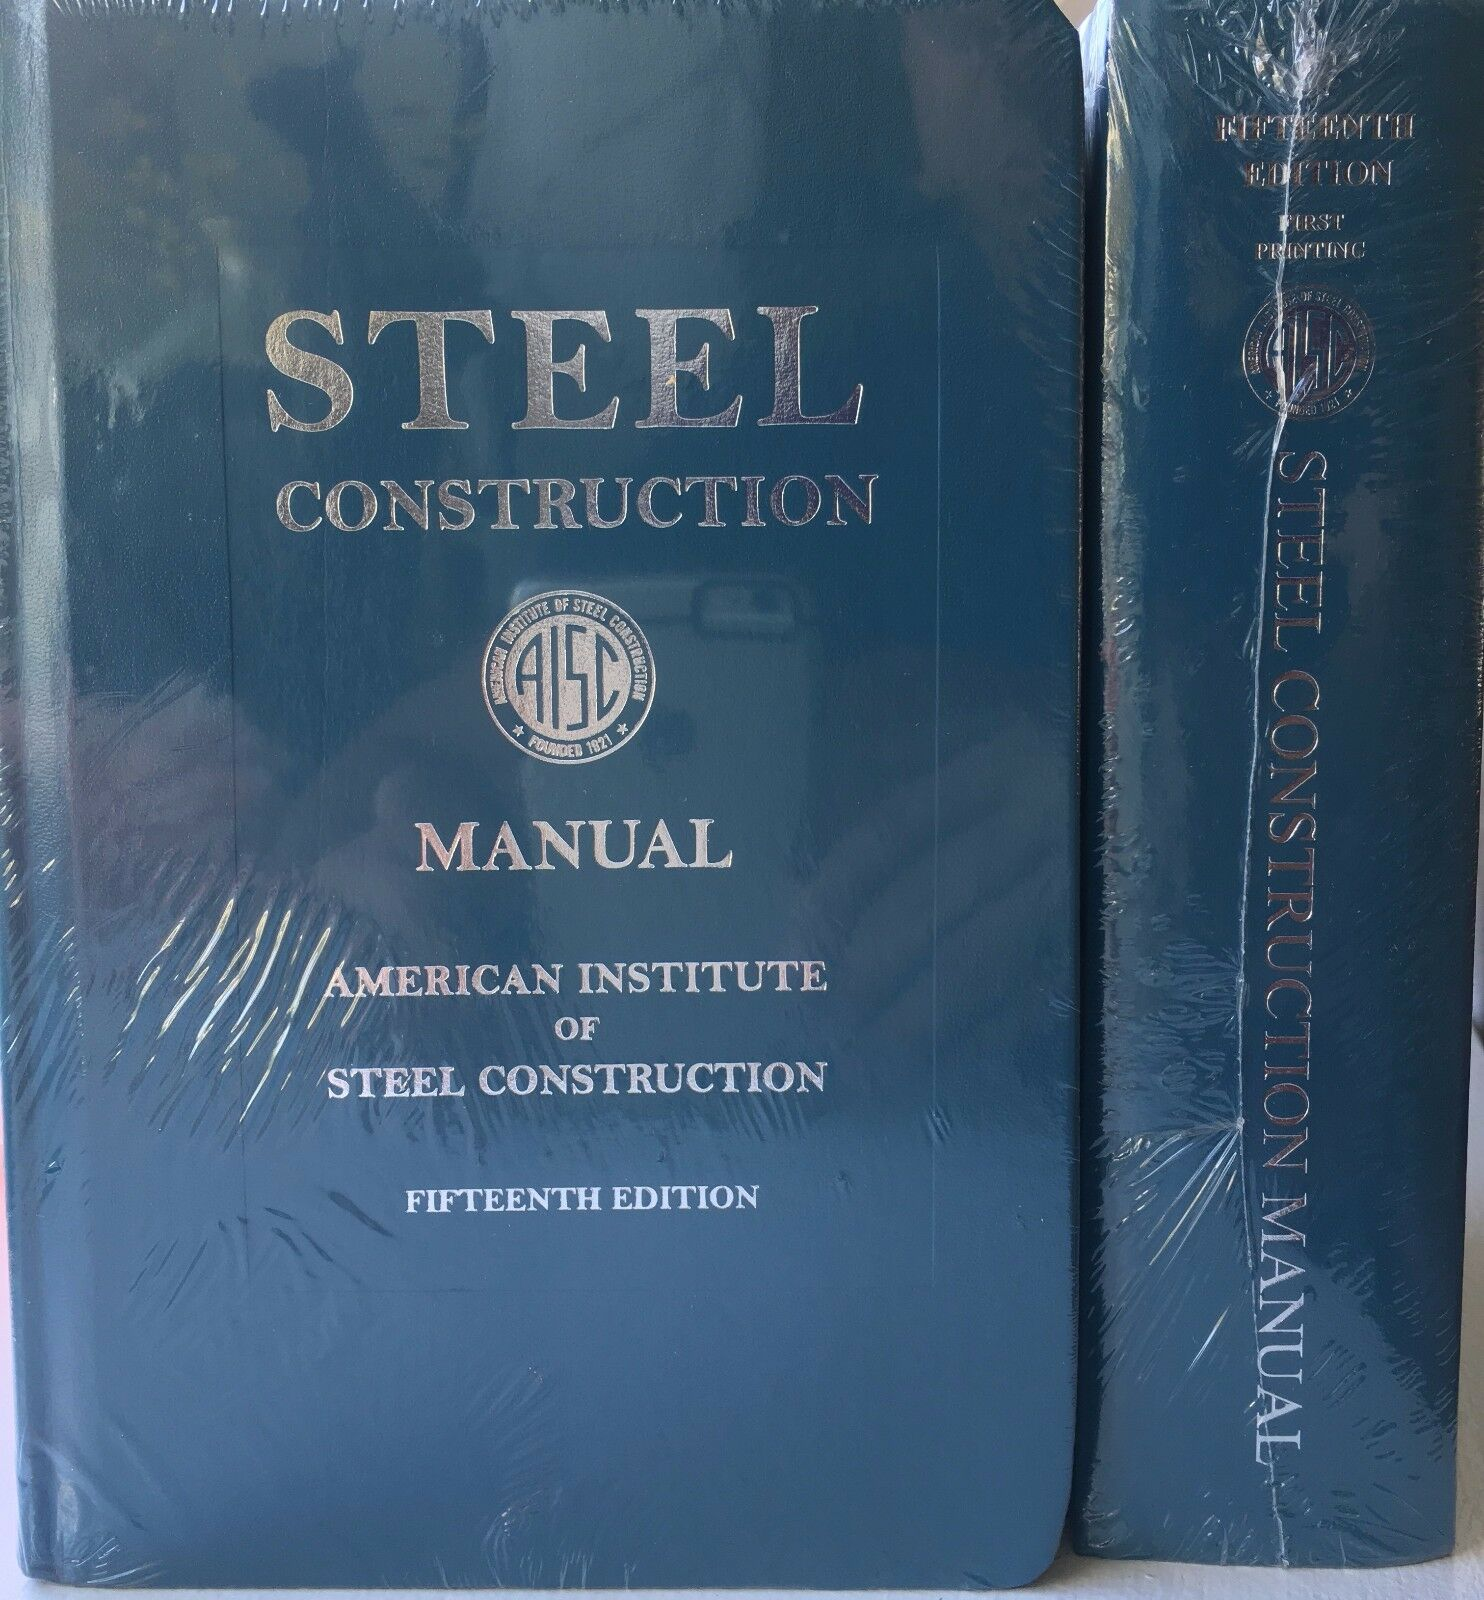 aisc steel construction manual 15th ed by american institute of rh picclick com aisc steel construction manual 8th edition aisc steel construction manual 8th edition